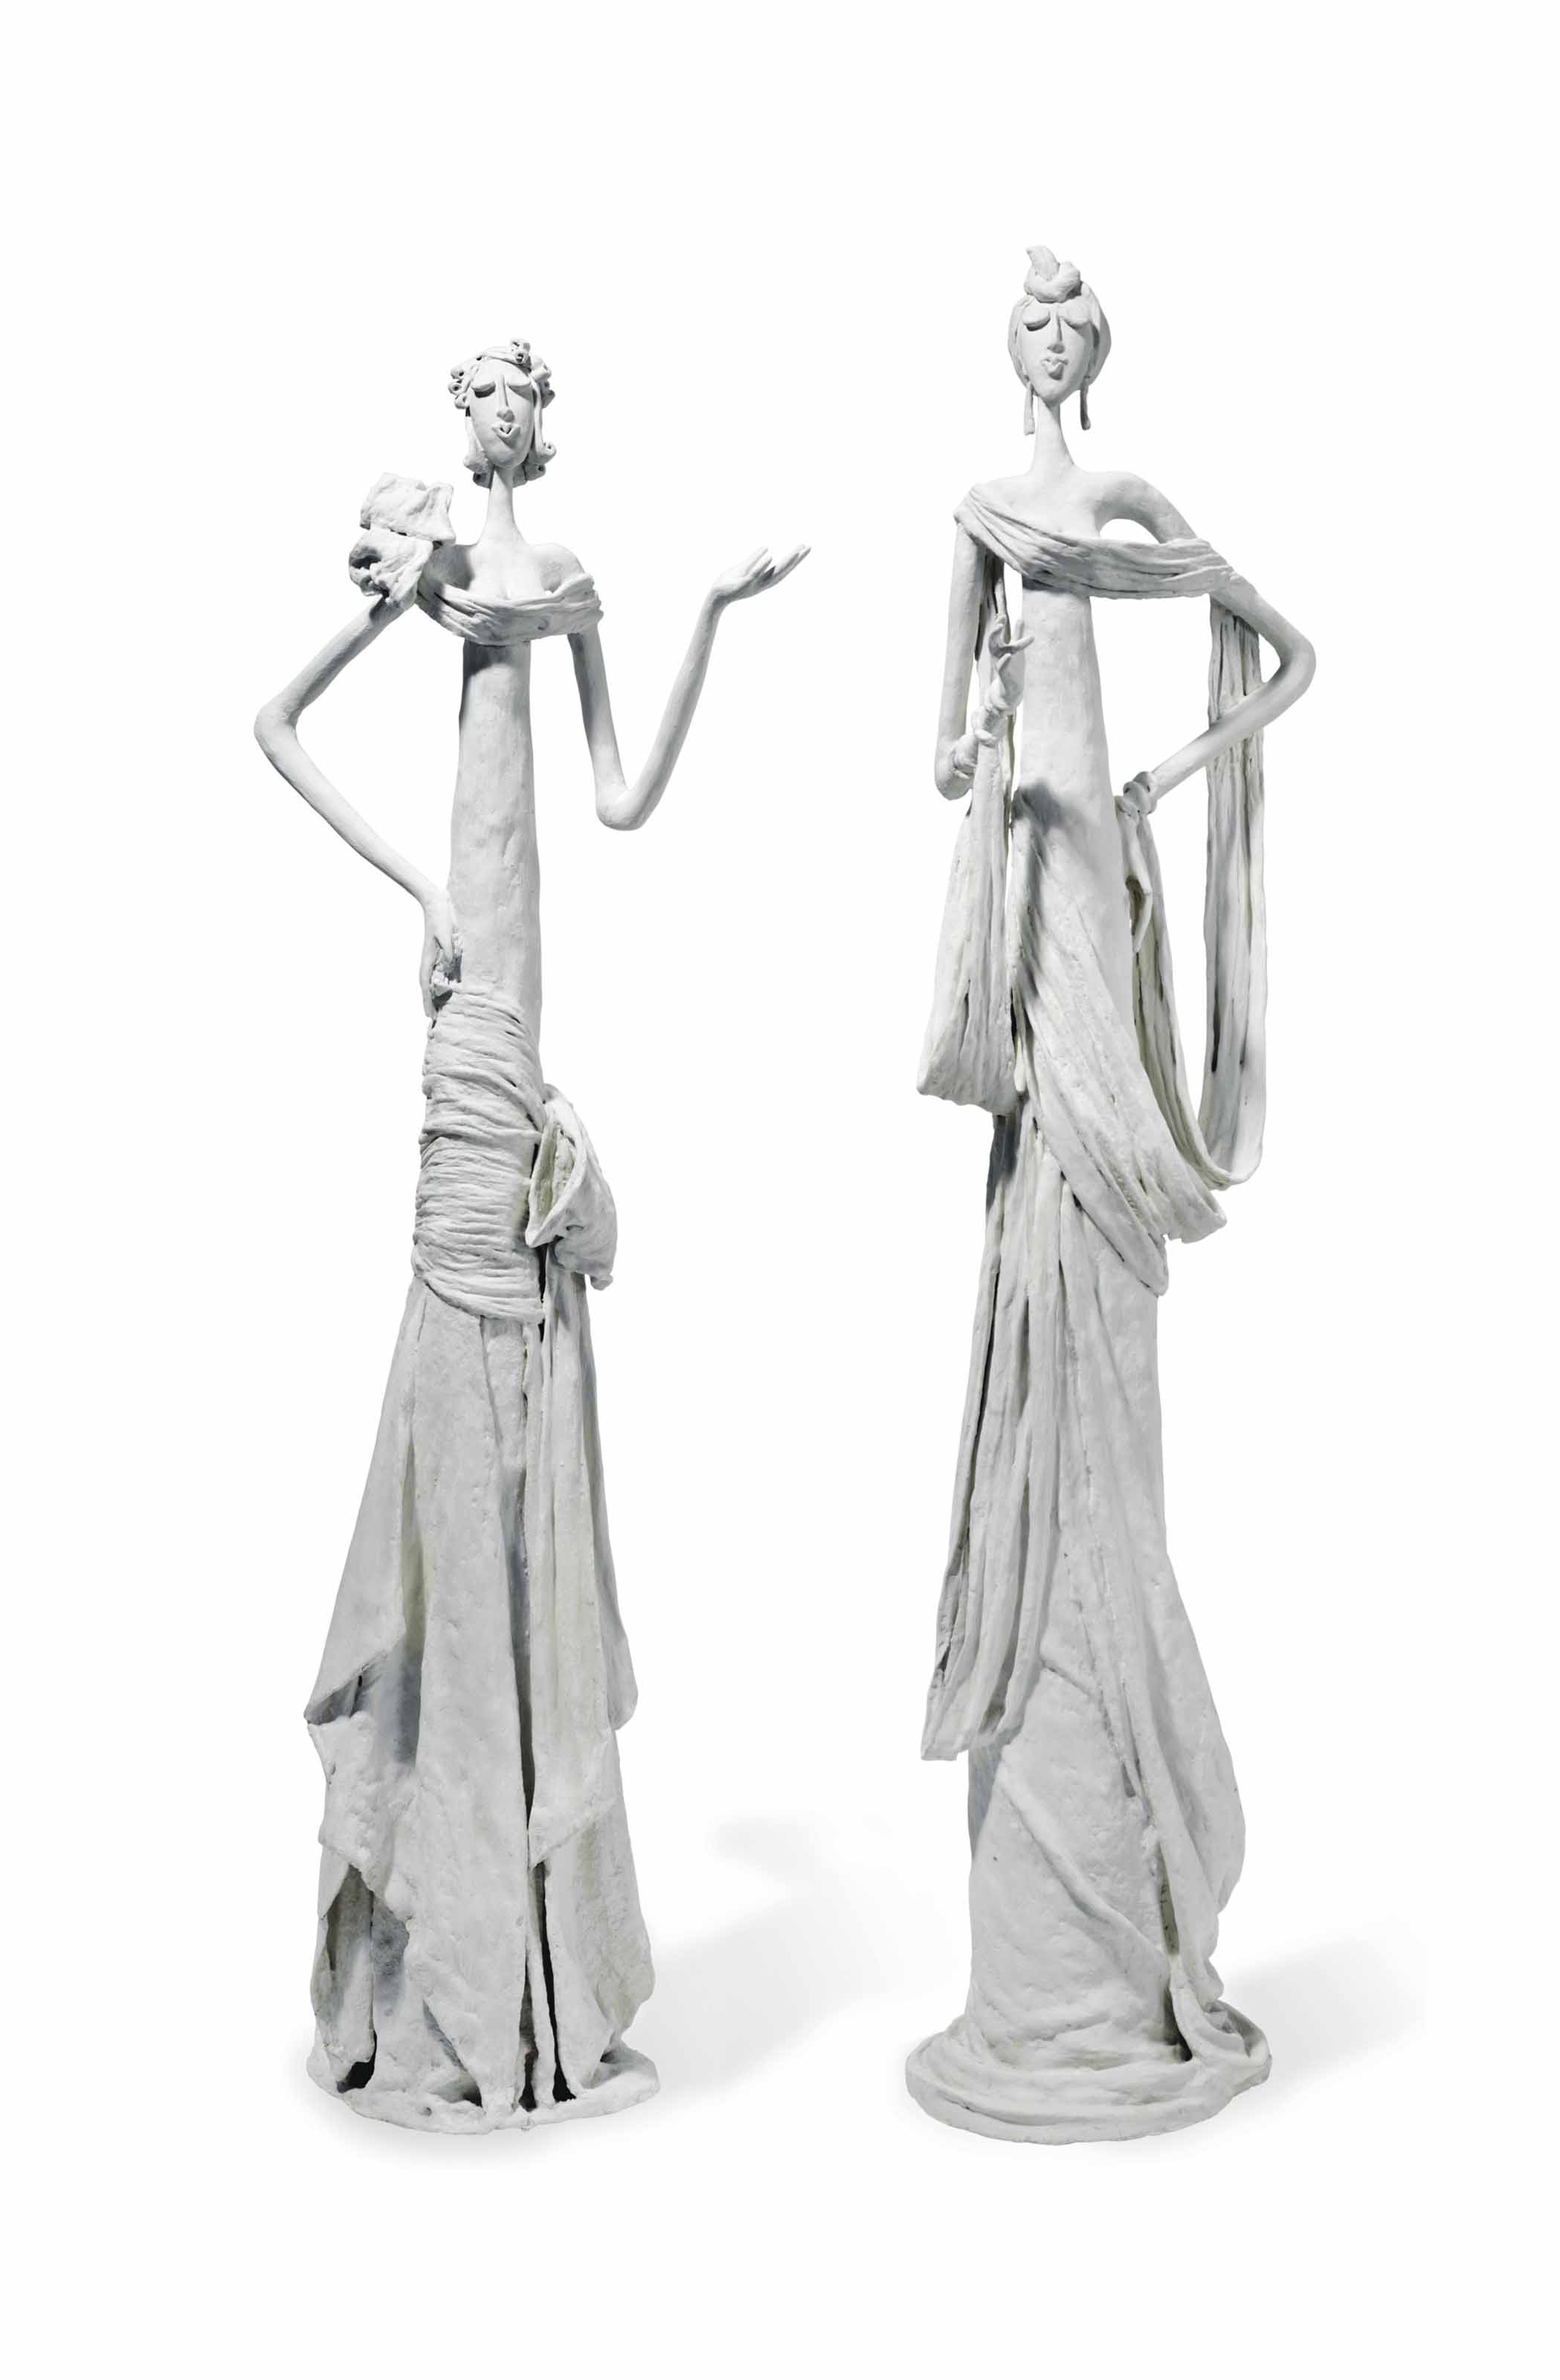 A PAIR OF PLASTER FIGURES OF WOMEN